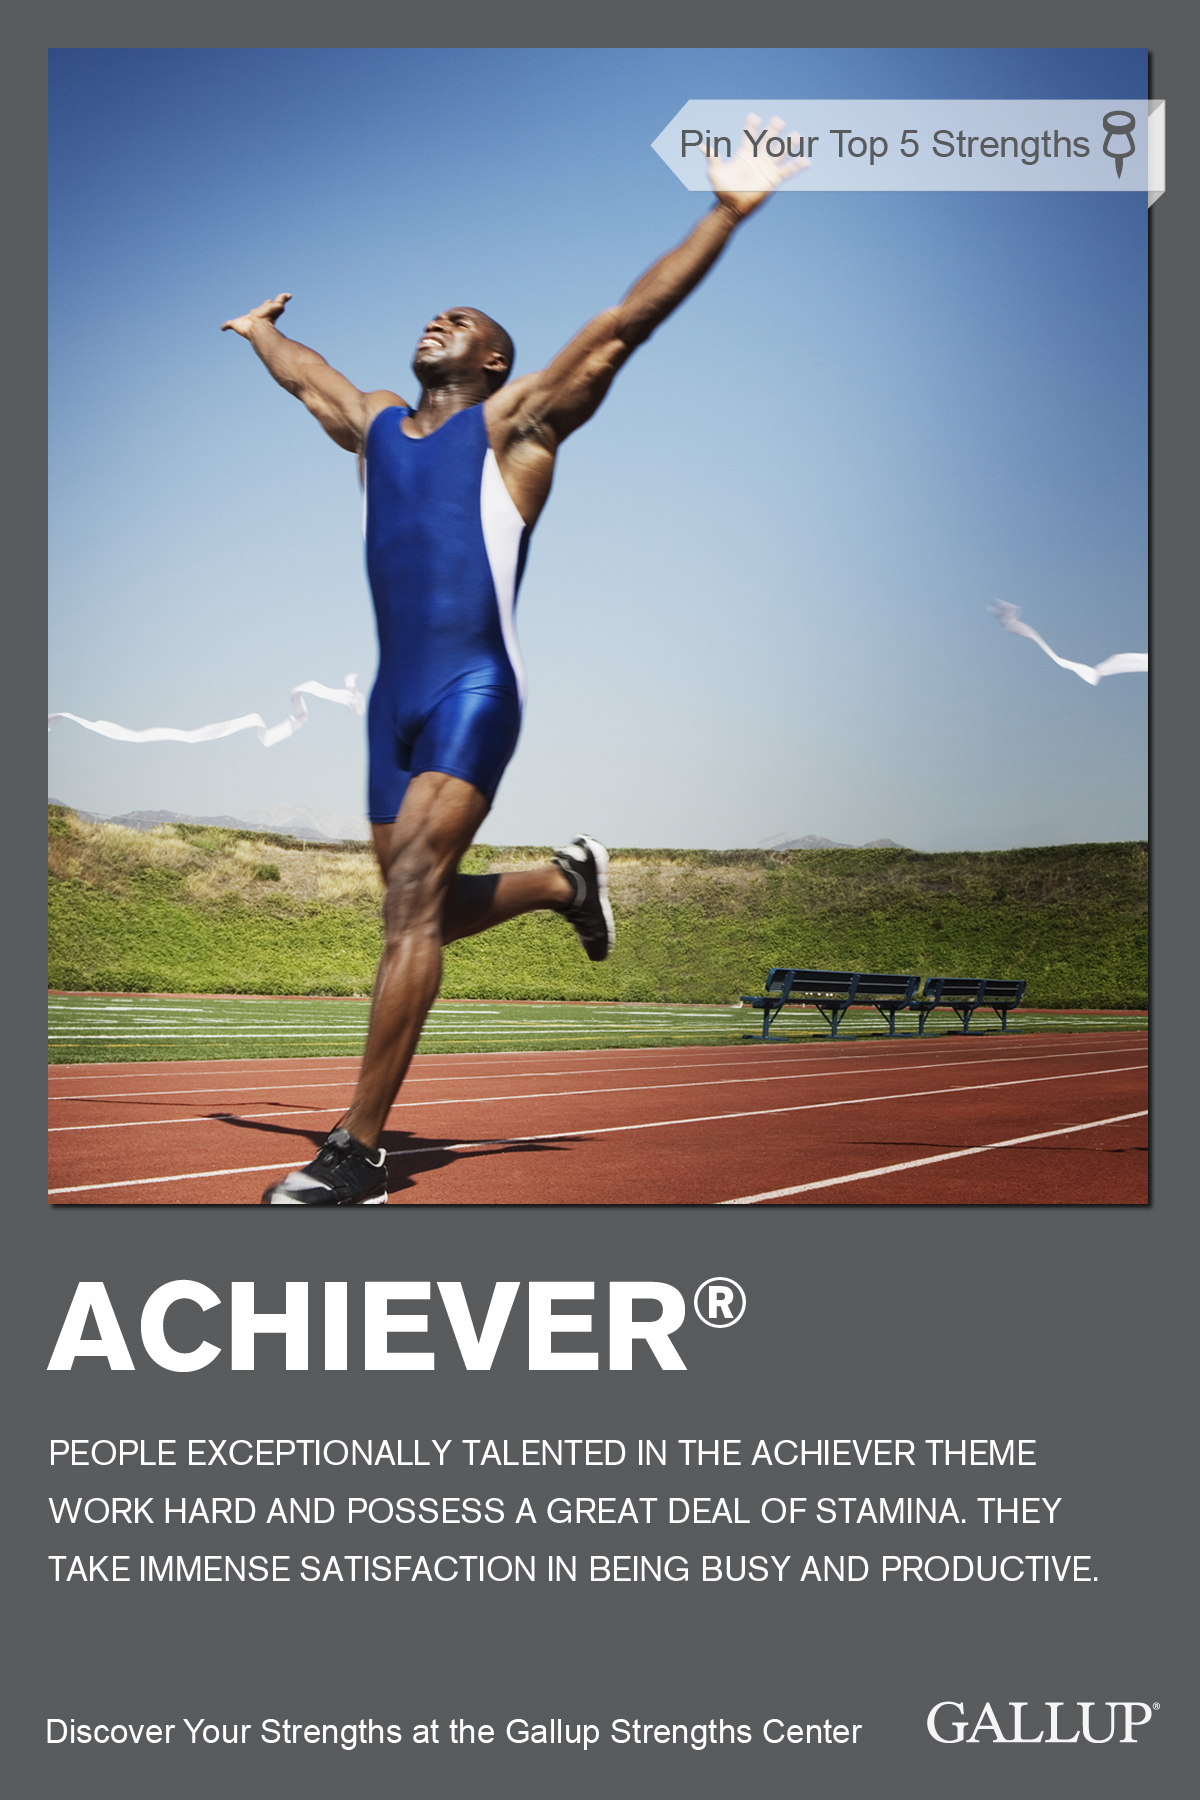 Achiever Strengths School StrengthsFinder Singapore.jpg